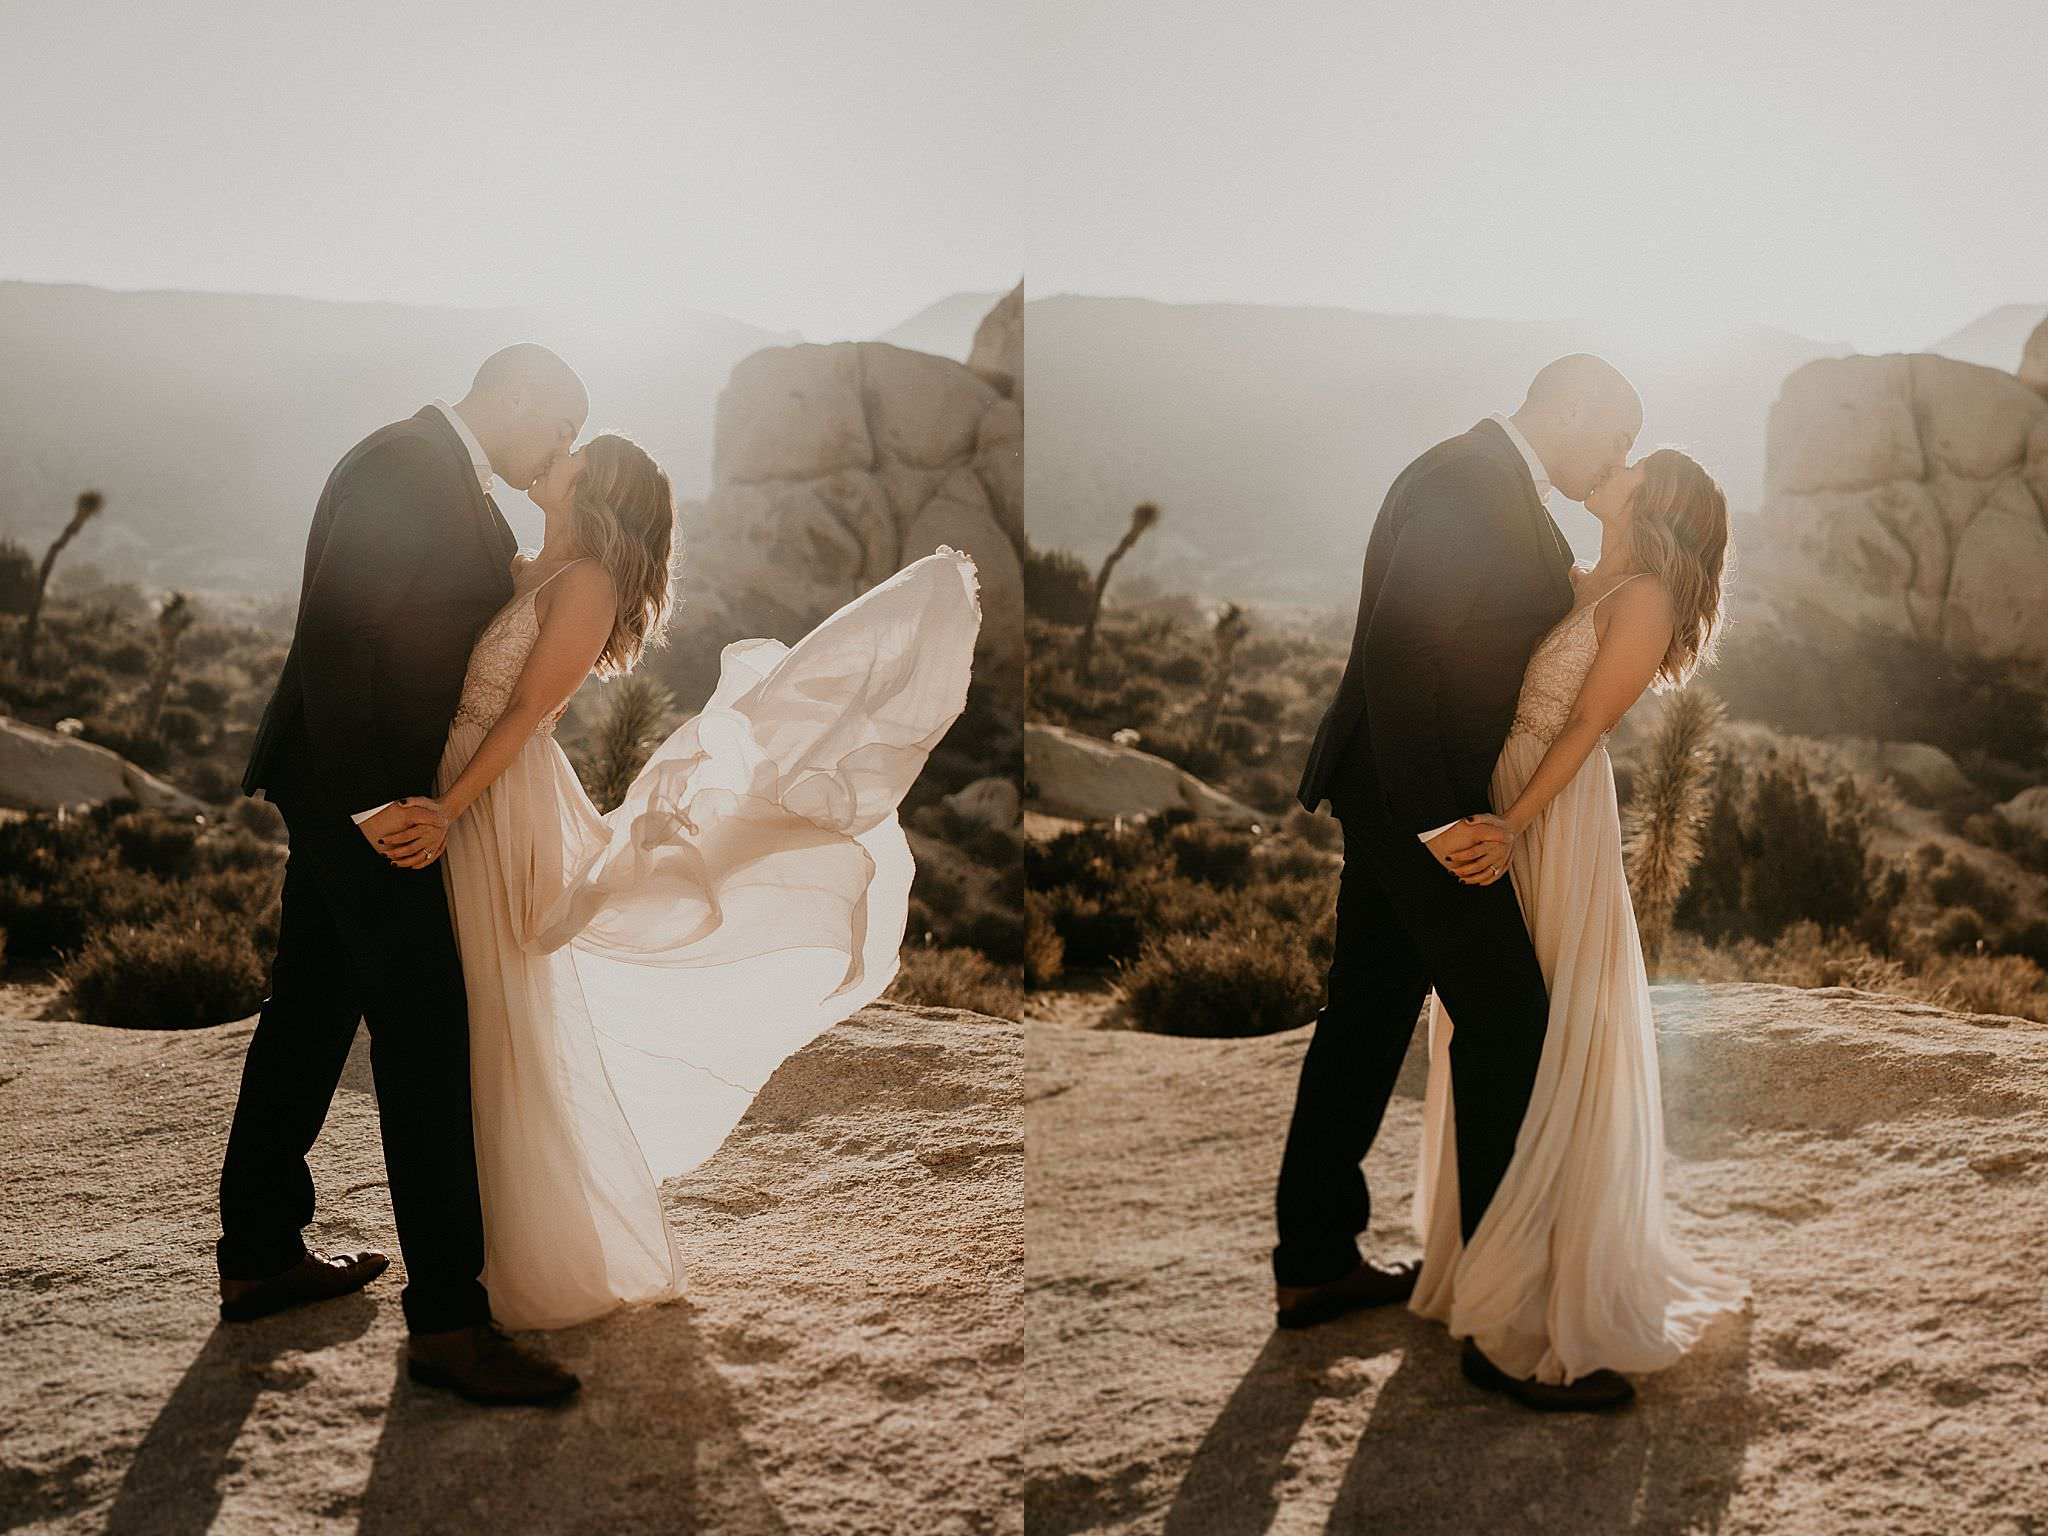 Bride and groom on their elopement day at Joshua Tree national park near Palm Springs desert